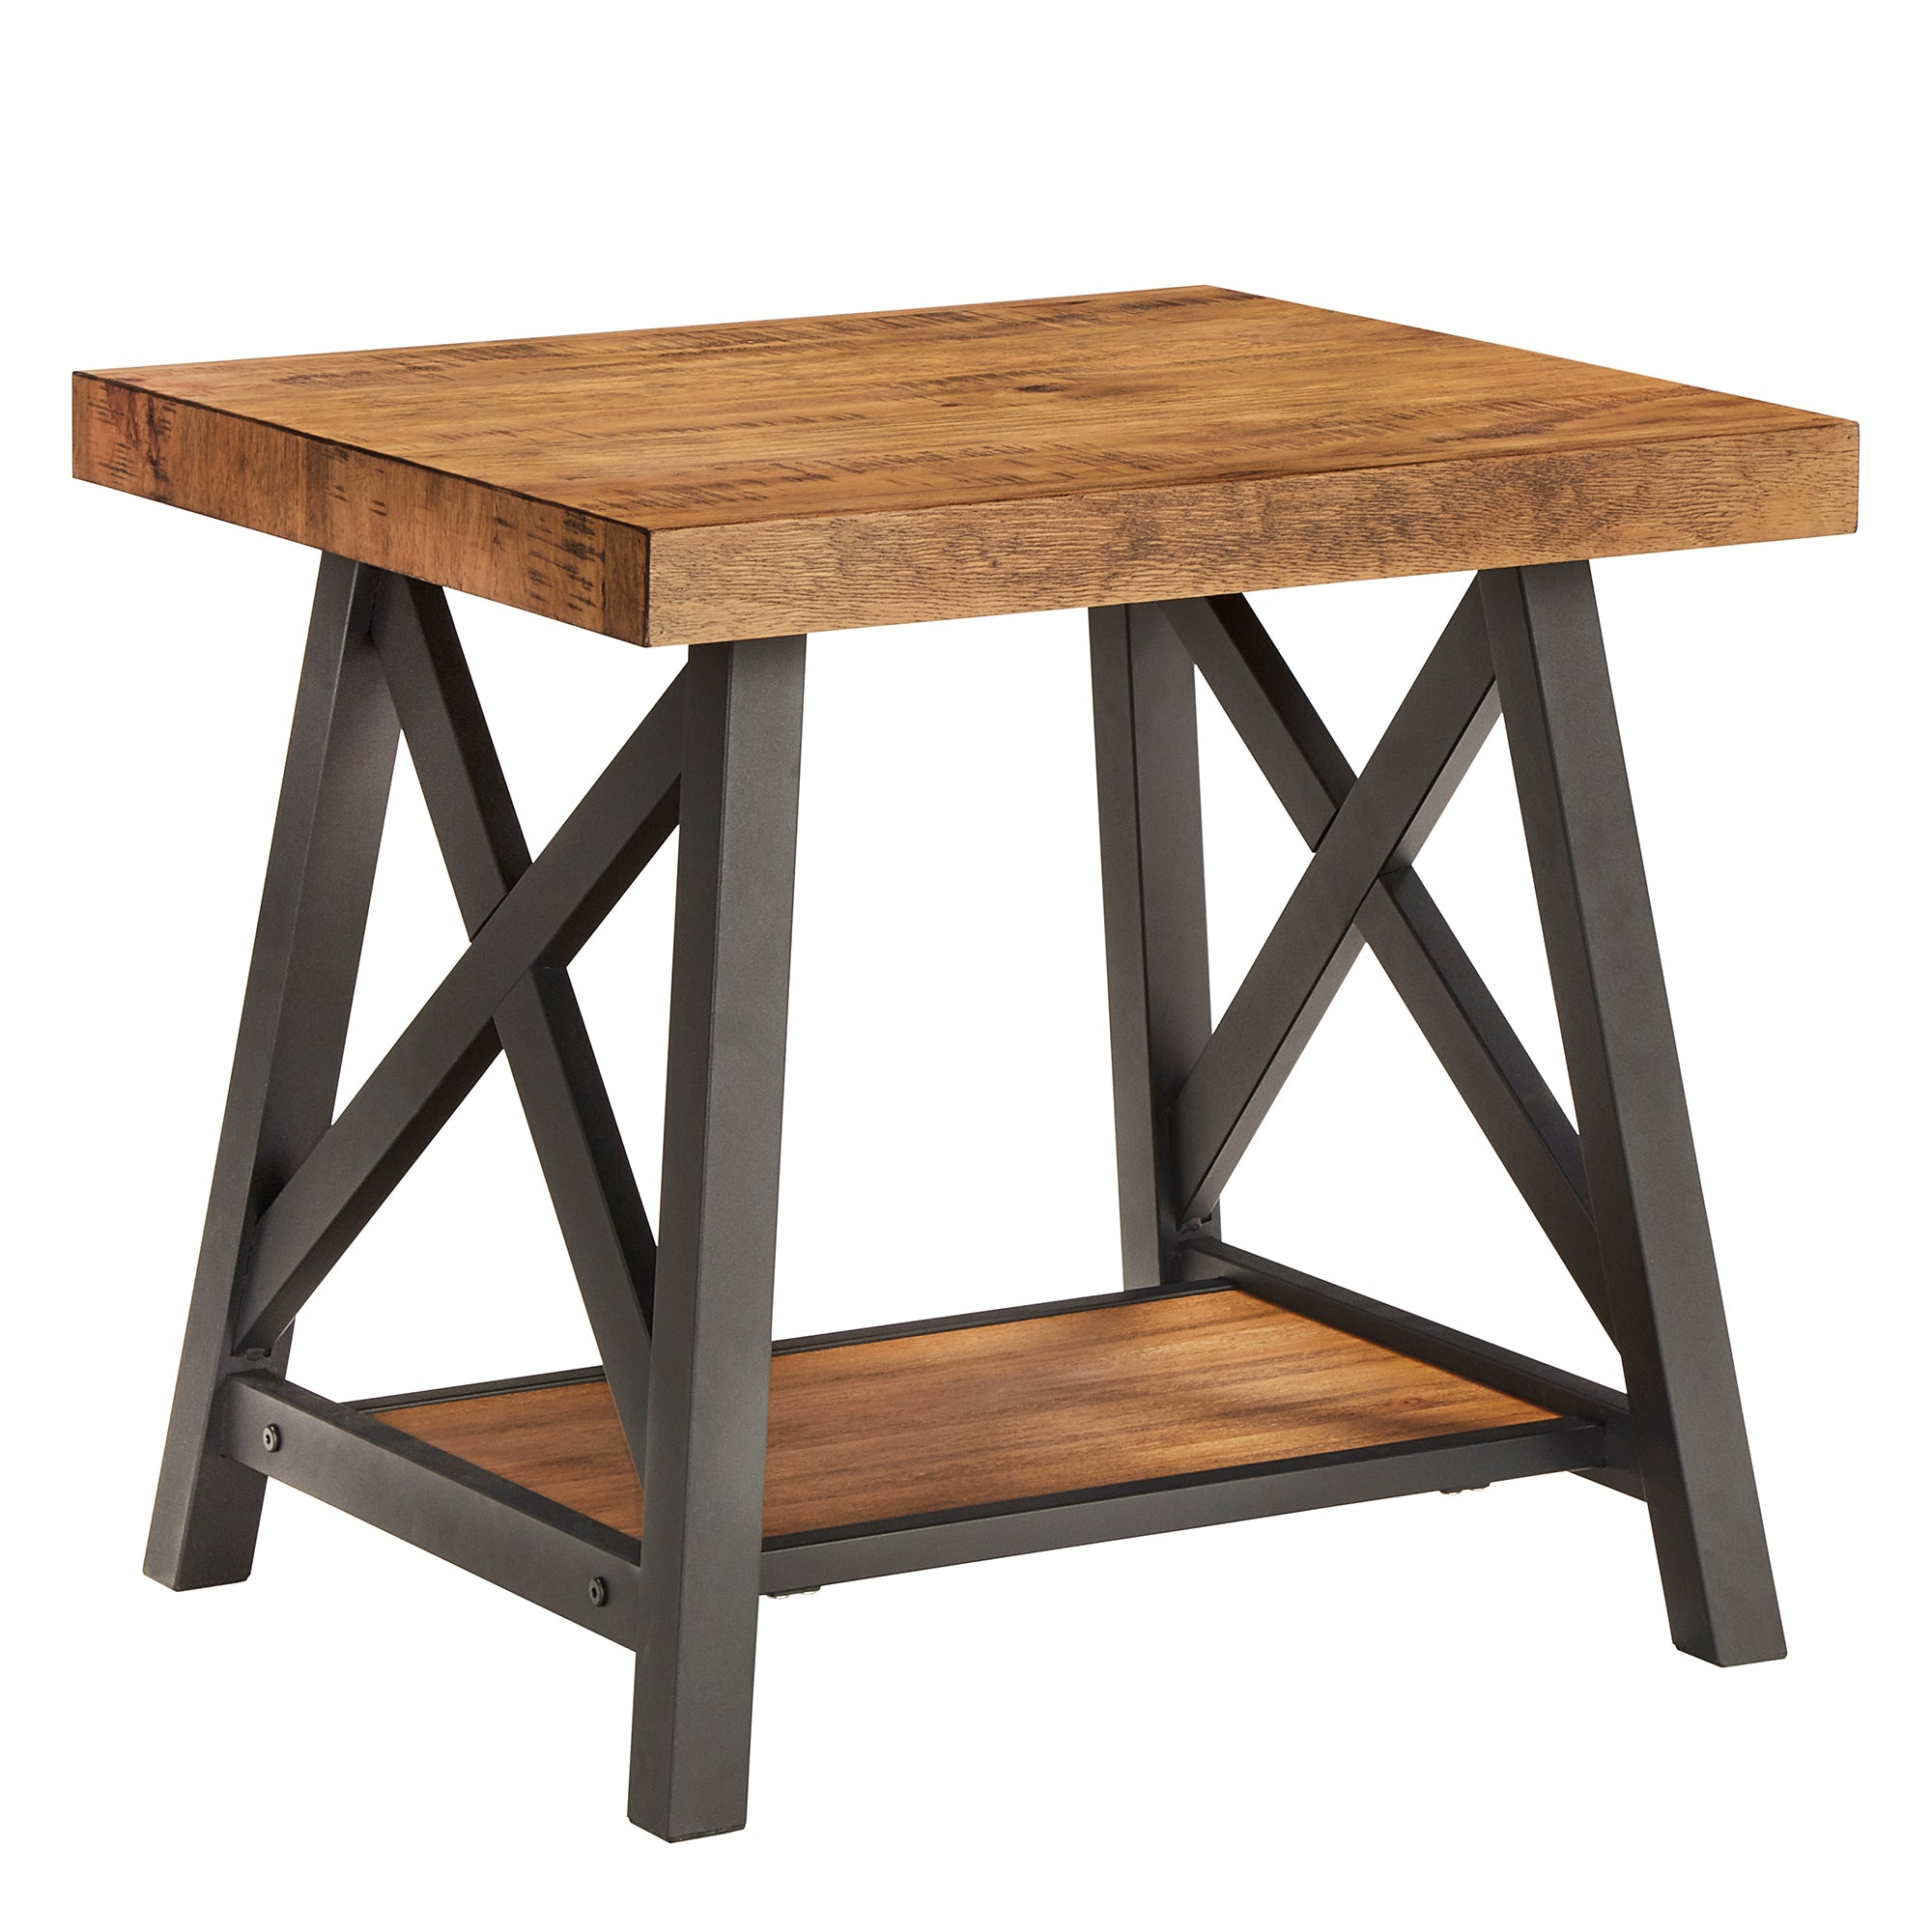 Rustic X-Base End Table with Shelf - Oak Finish